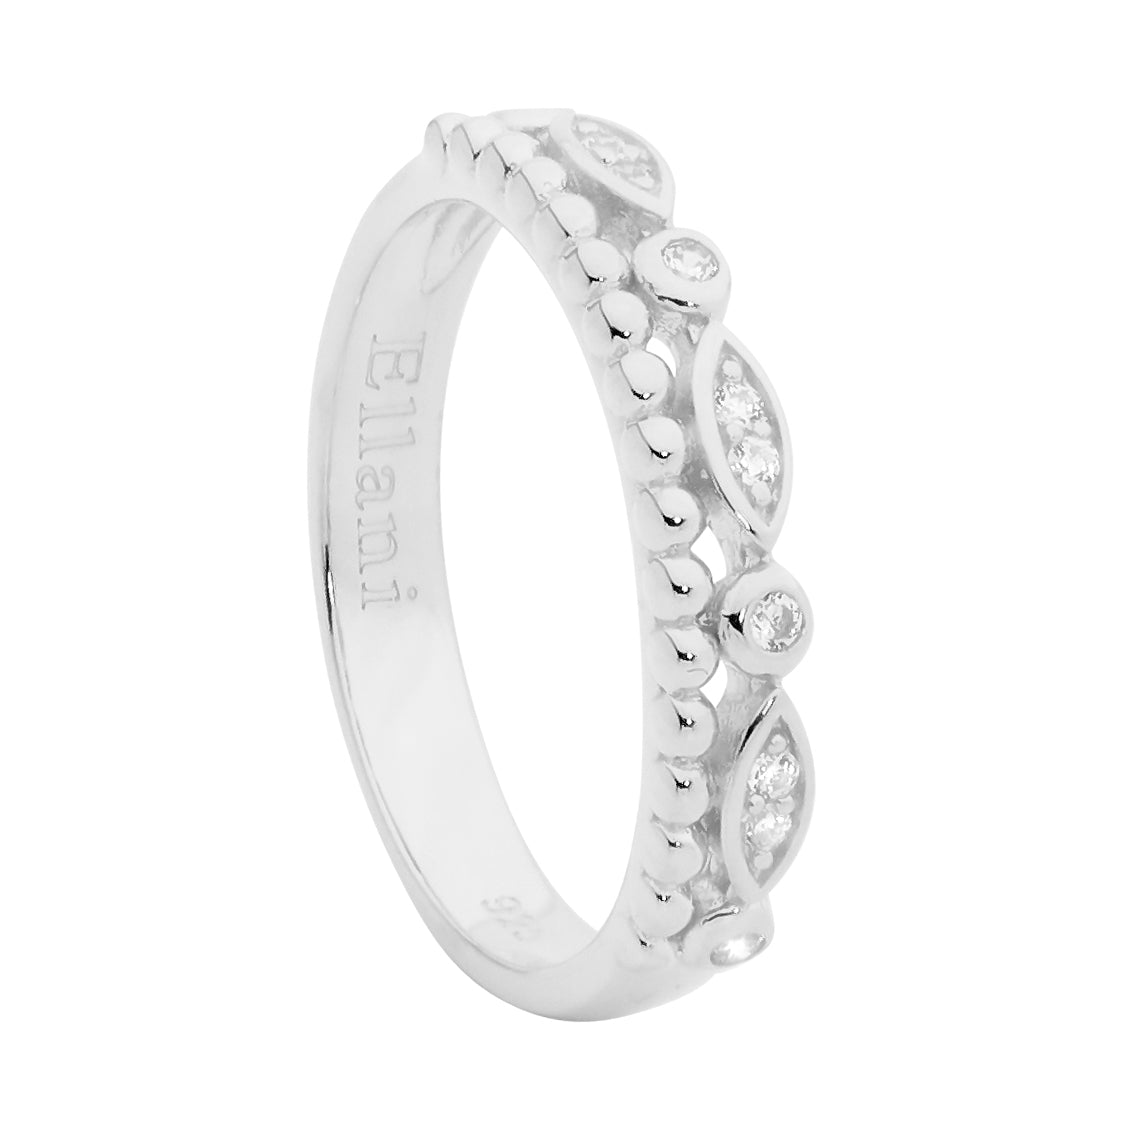 S/S DOUBLE ROW RING, WH CZ & BUBBLE BAND - RRP $79